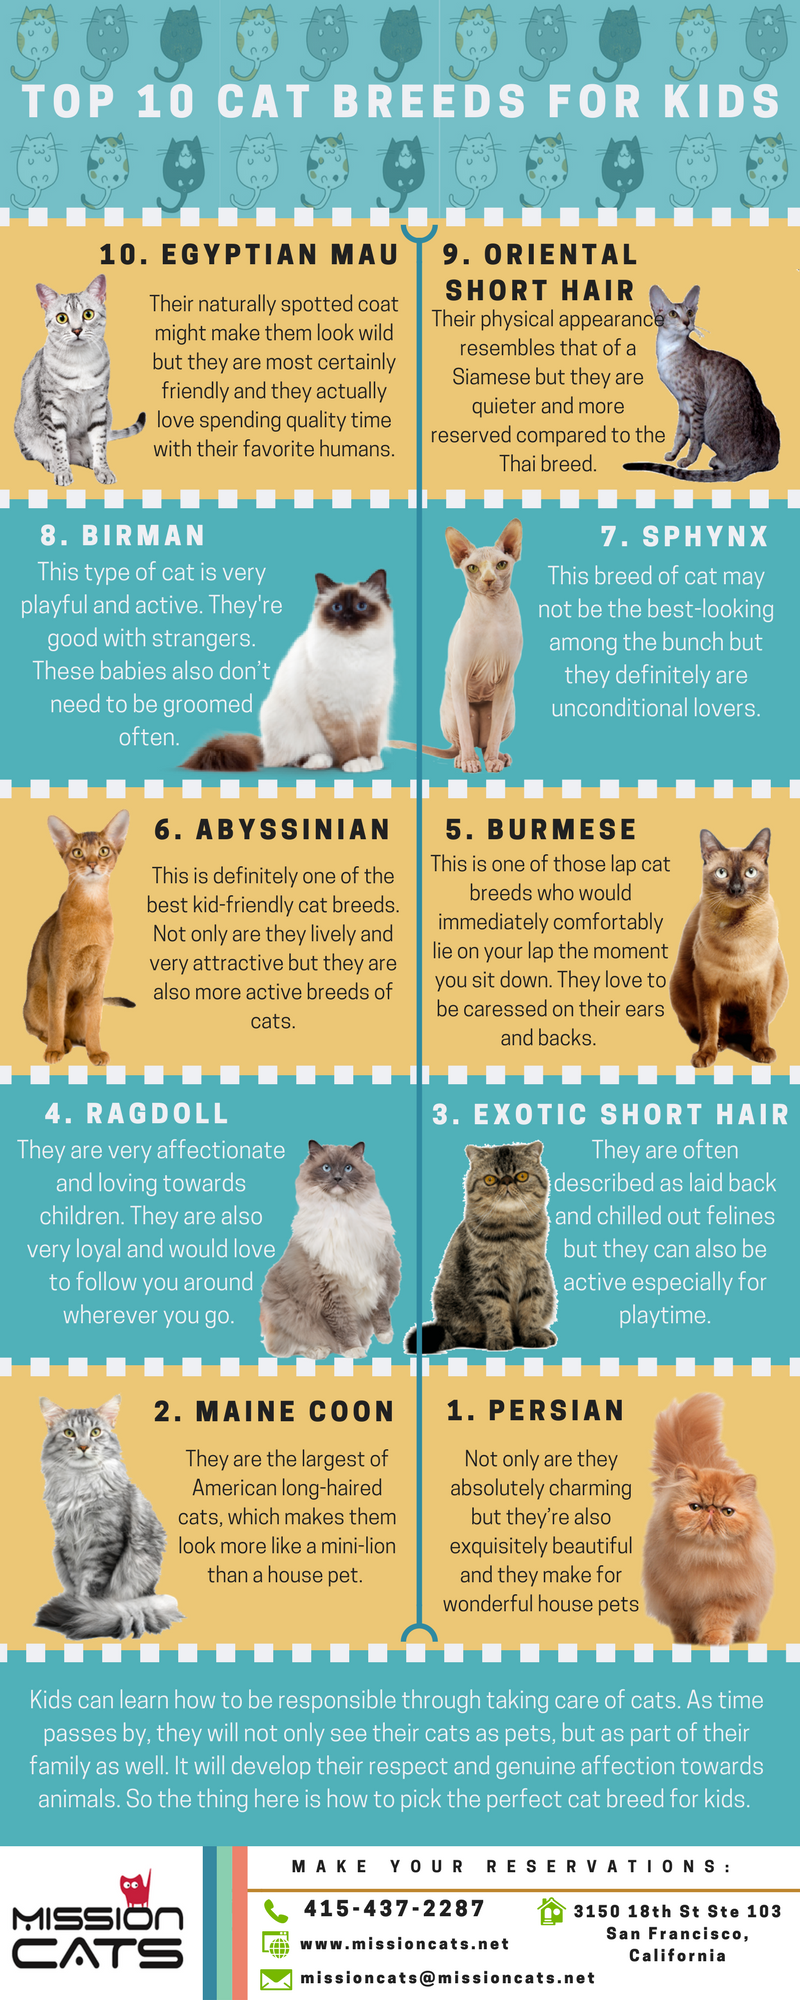 Pin By Mission Cats On Cats Care Cat Sitting Cat Boarding Cat Hotel Infographics Cat Breeds Cats Egyptian Mau